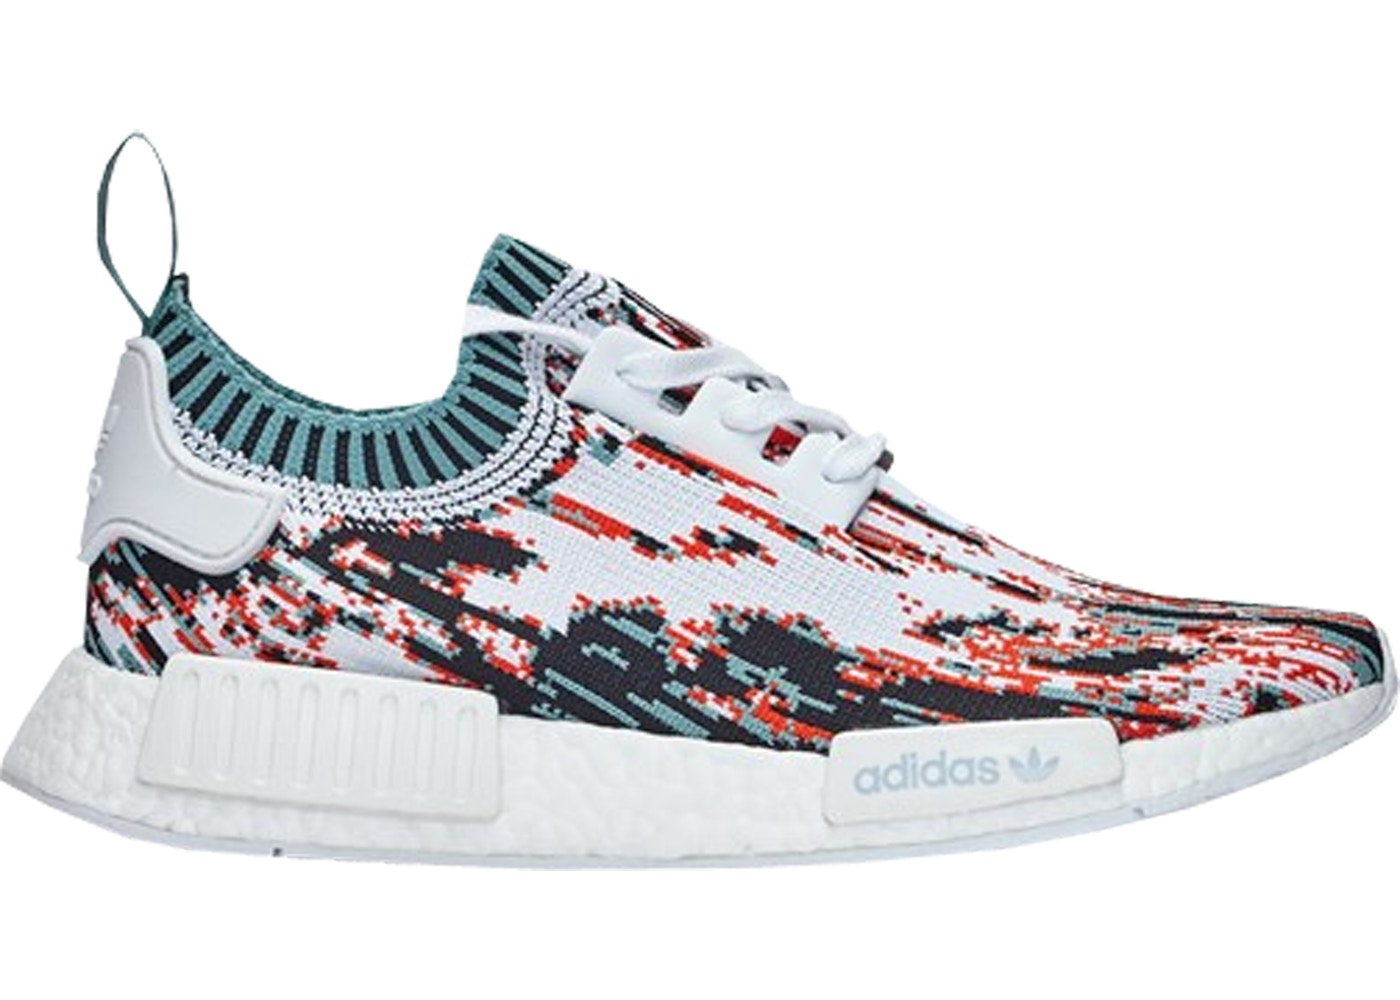 Adidas NMD R1 PK Sneakersnstuff Datamosh Orange